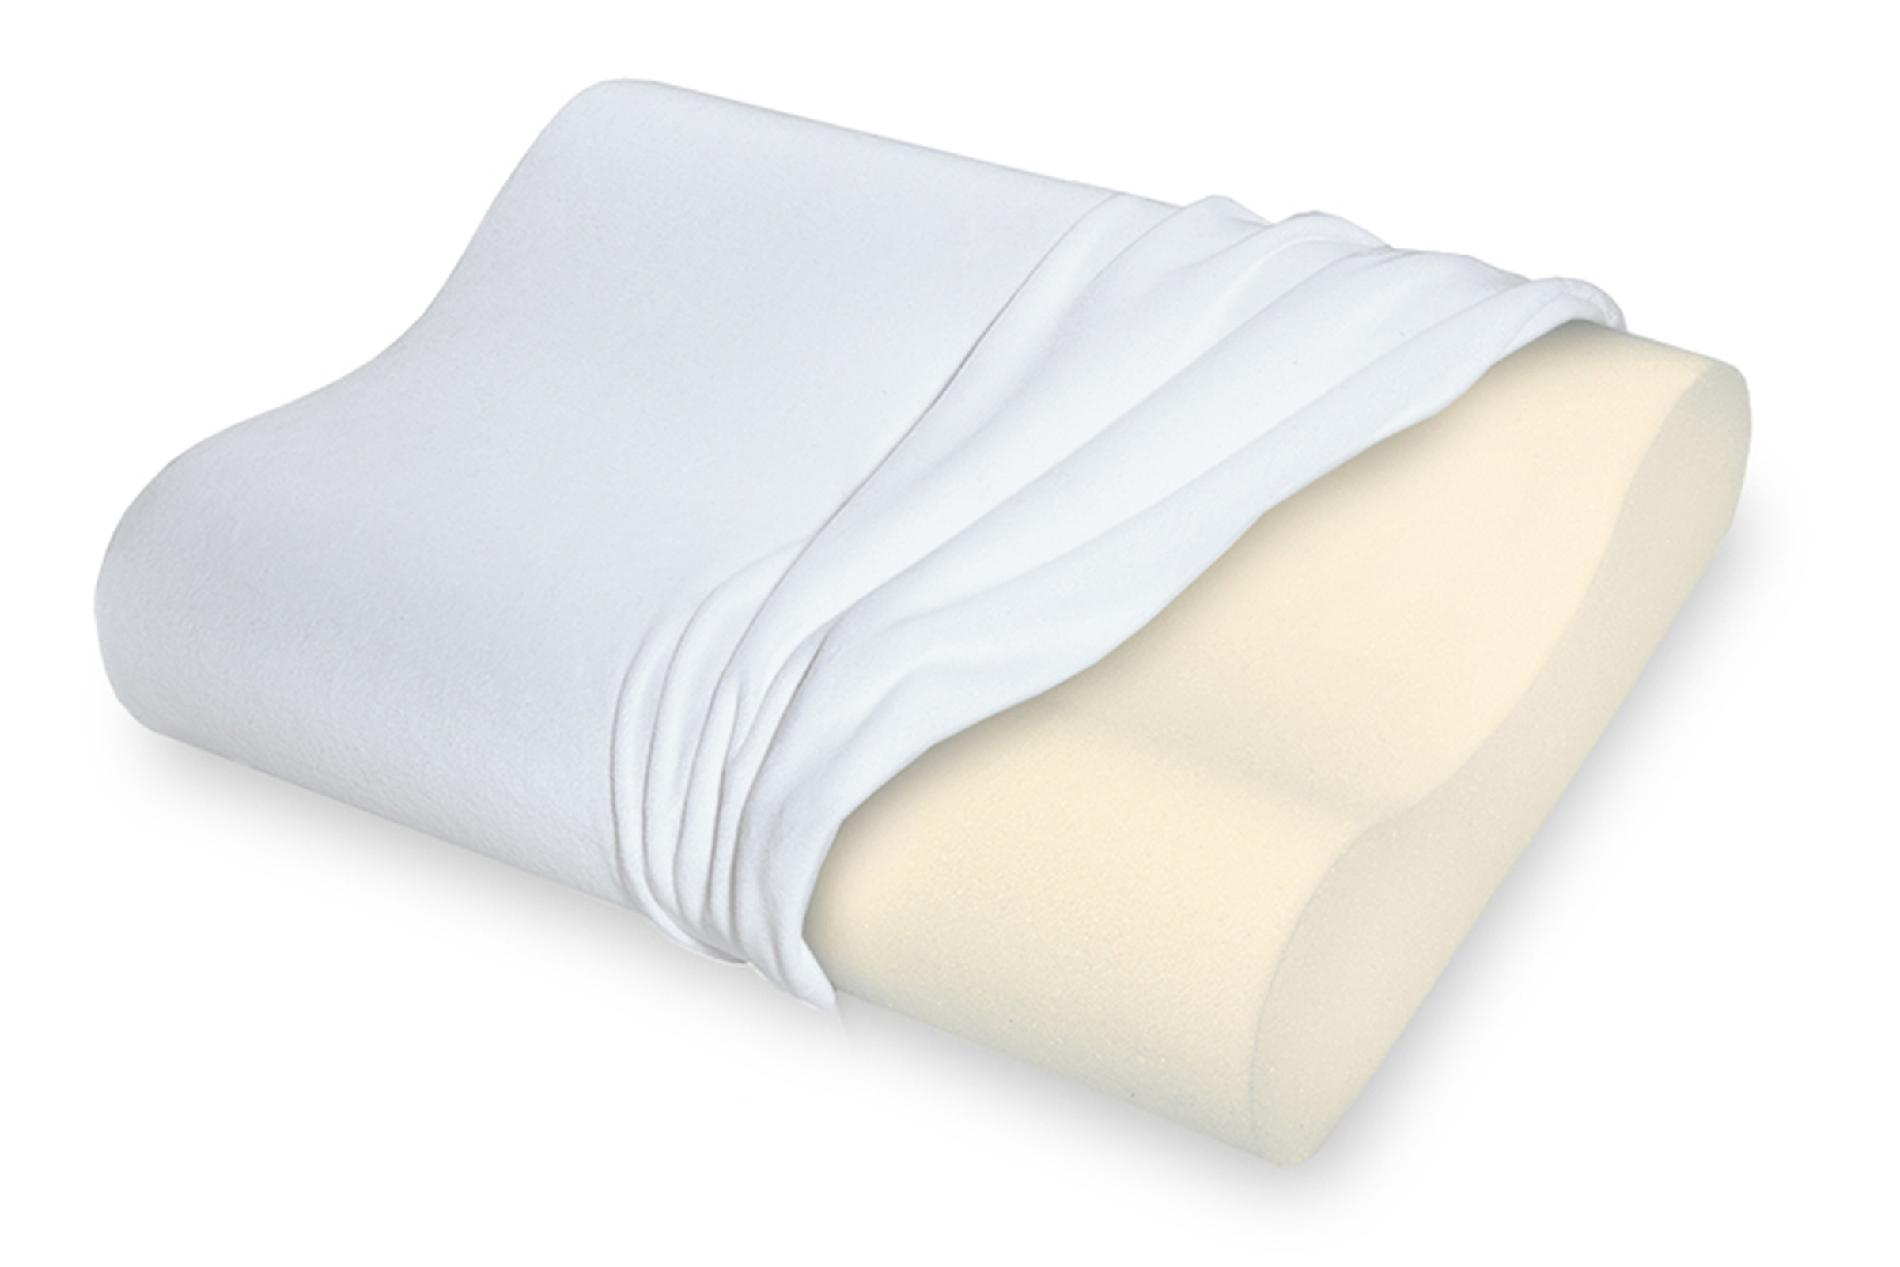 Sleep Innovations Touch of Comfort Memory Foam Pillow